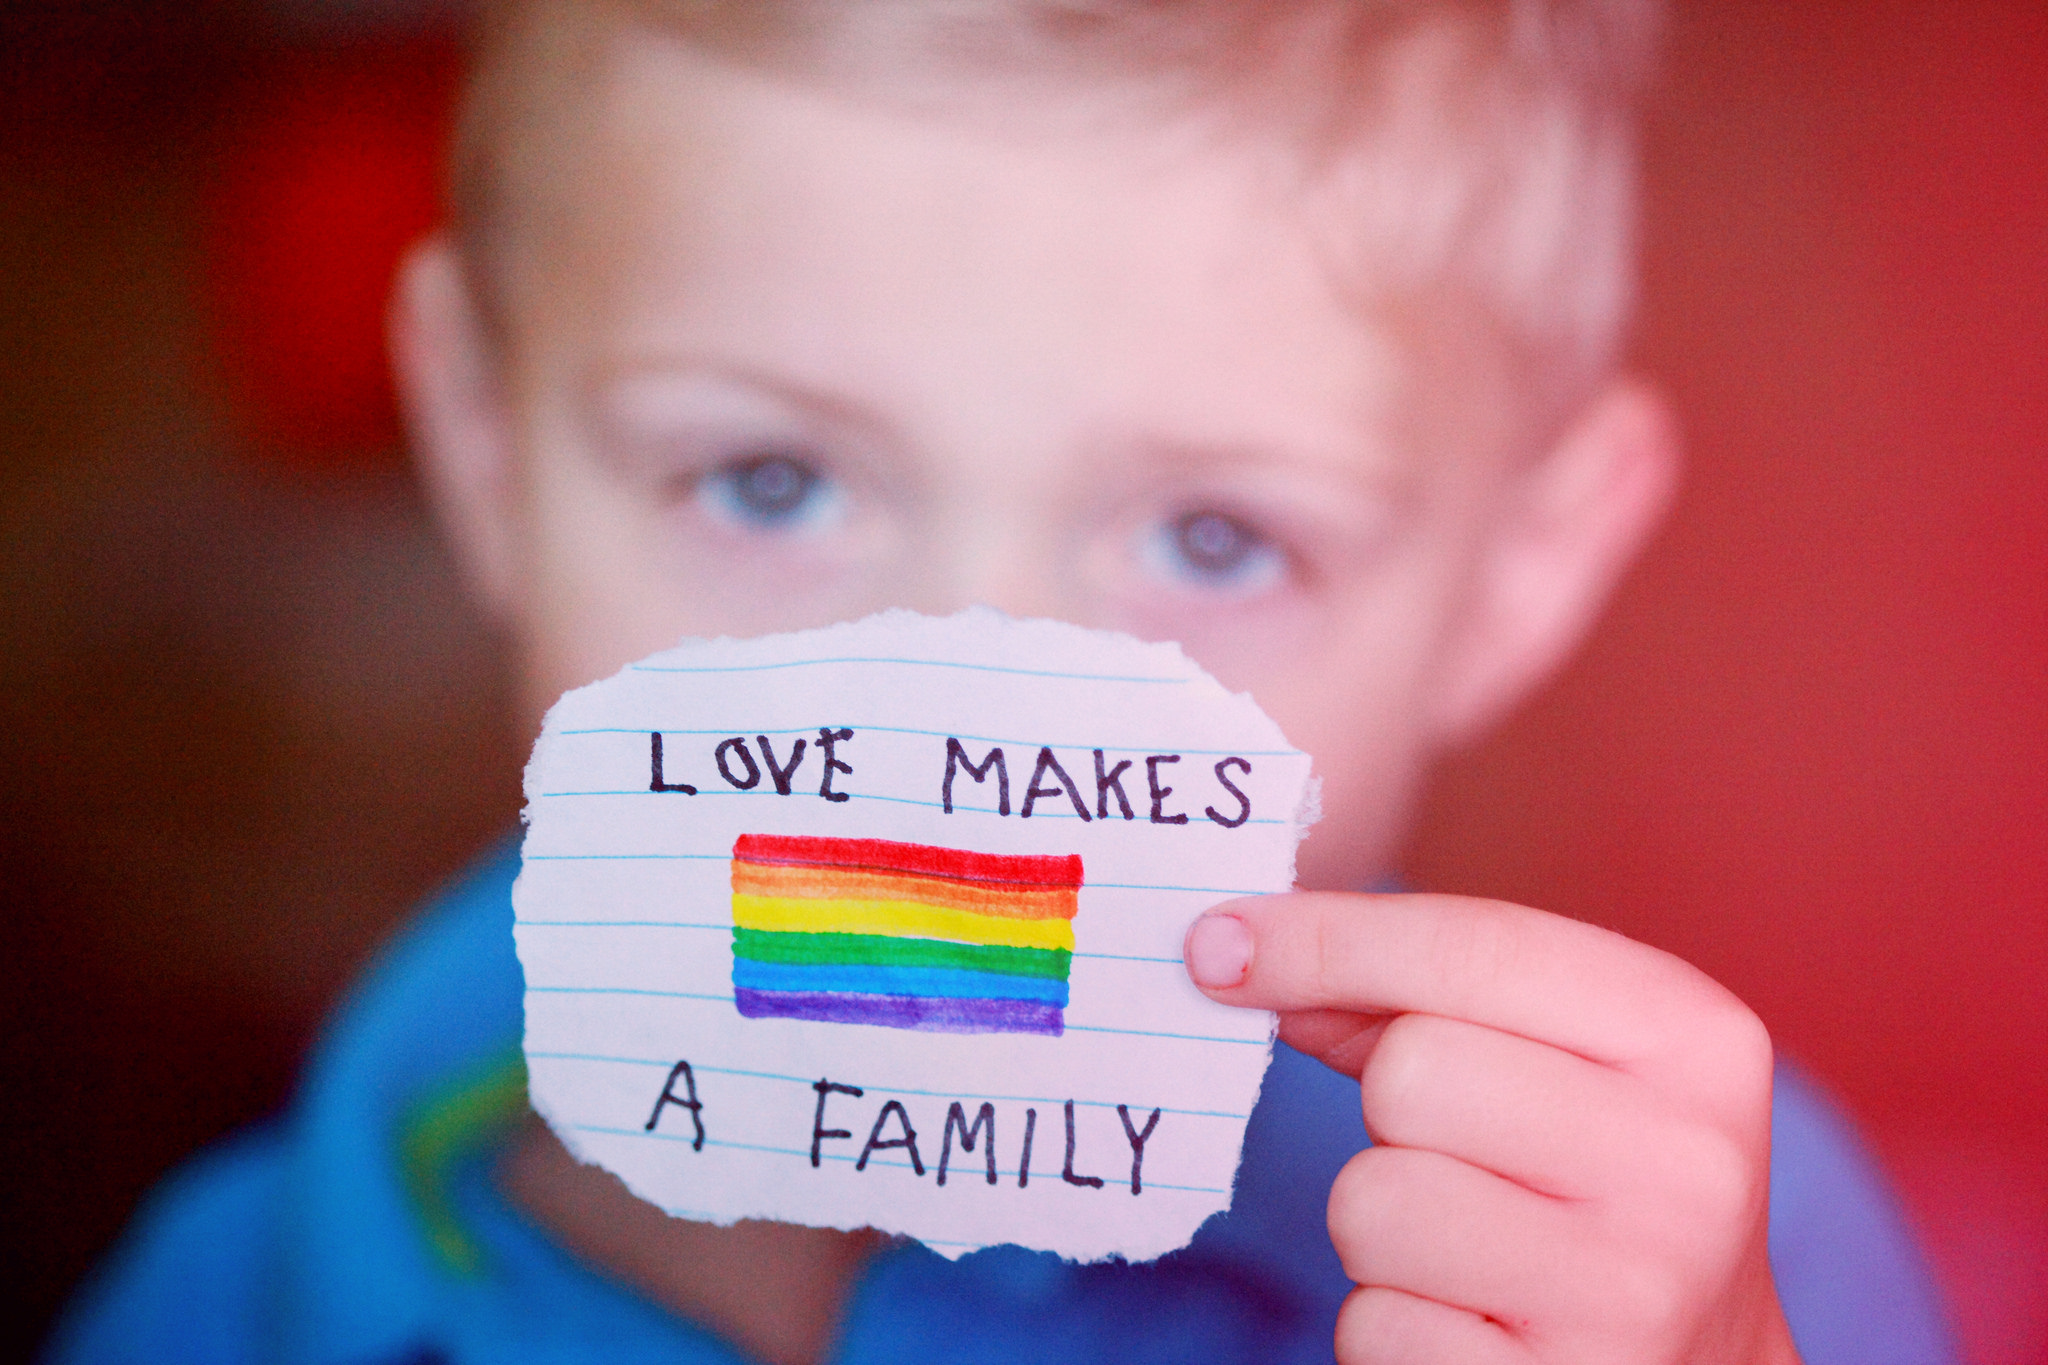 Love makes a family!